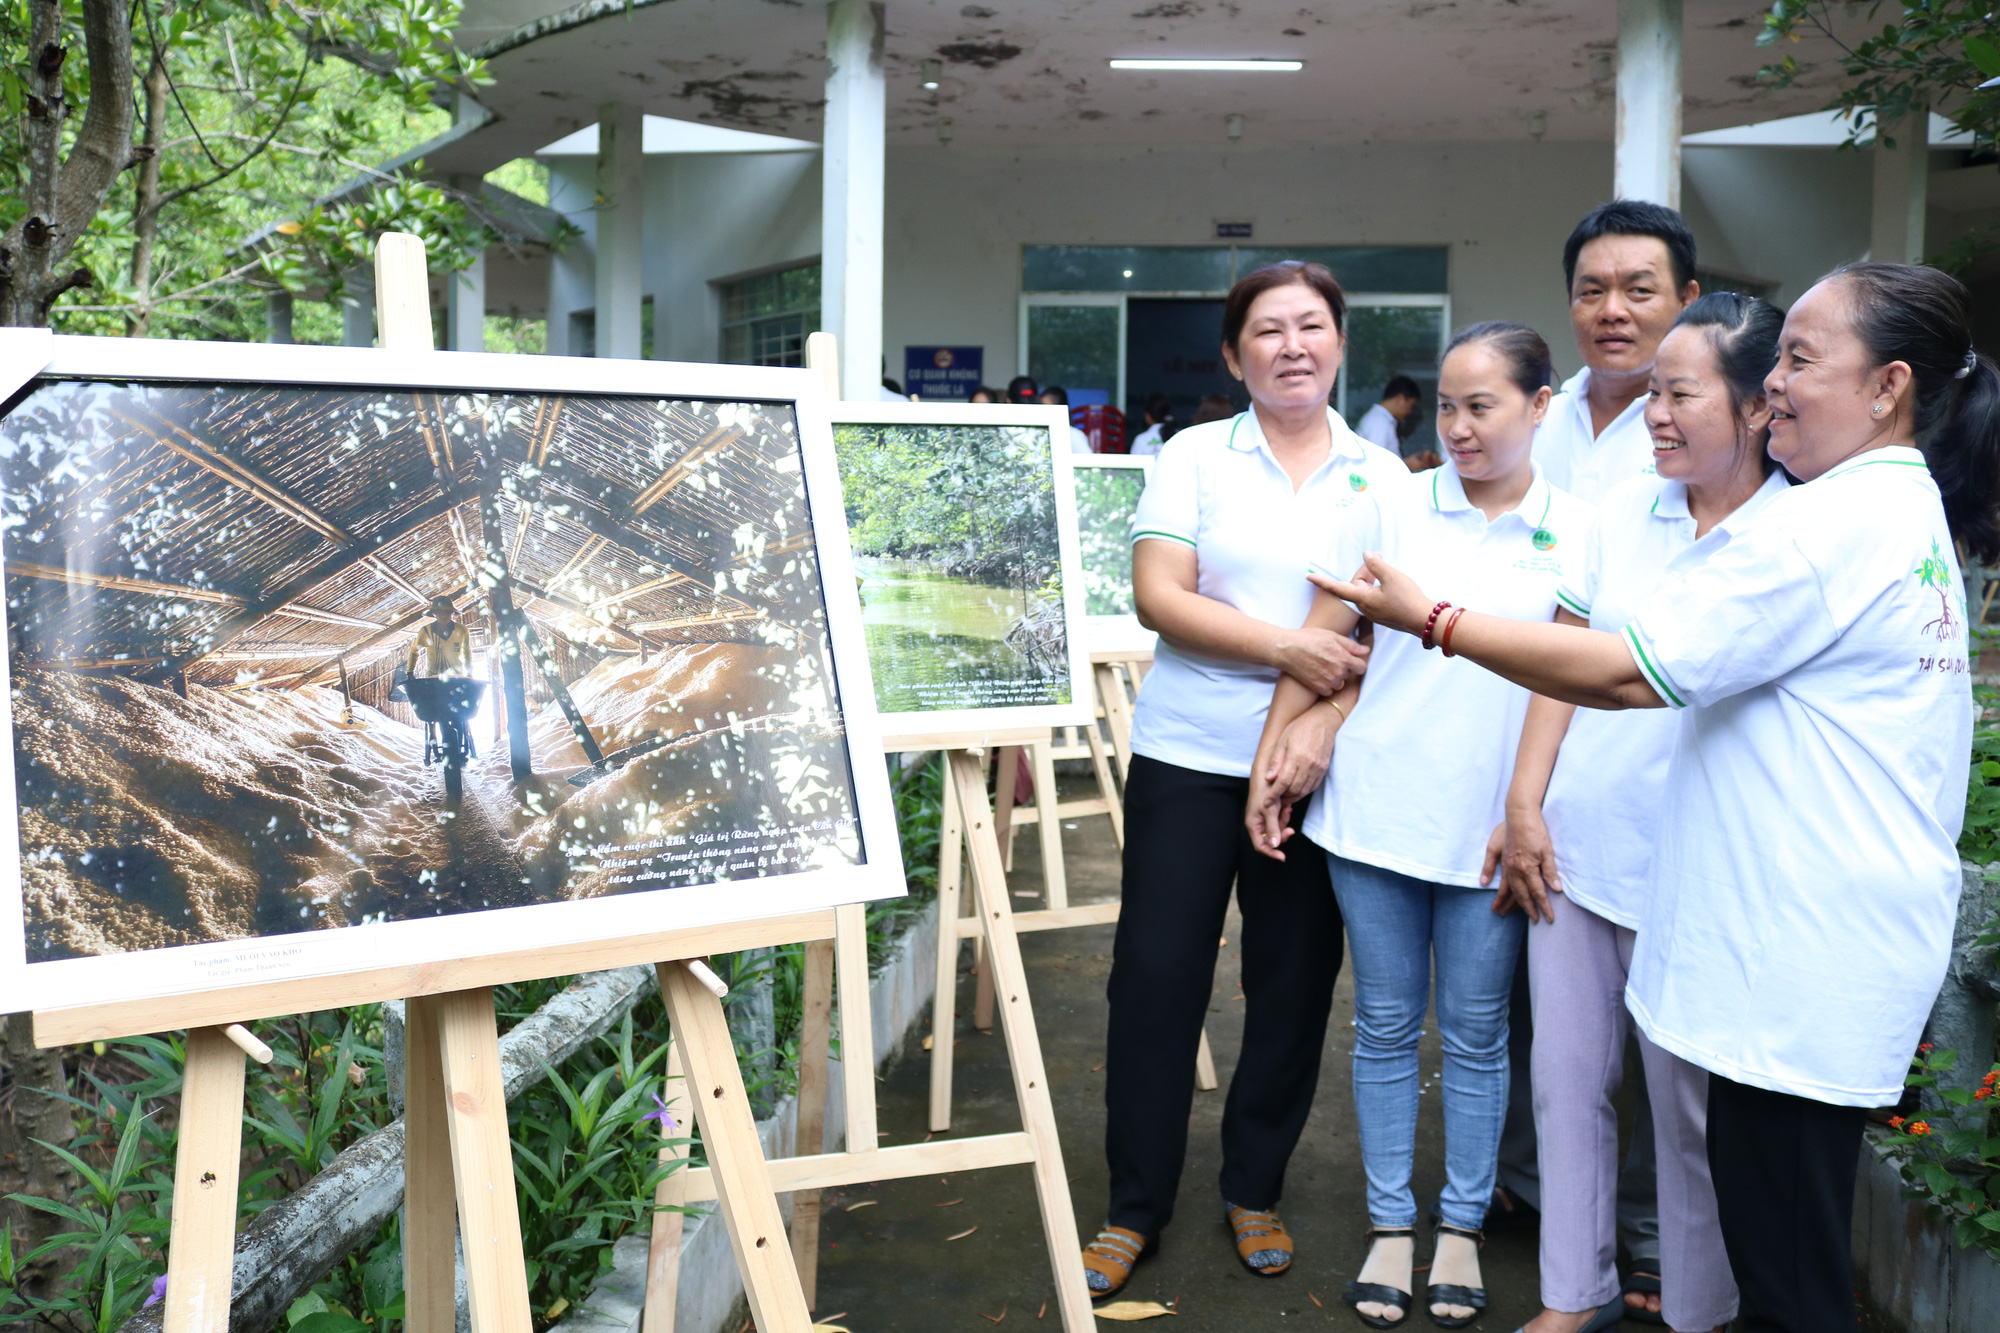 Participants view photos of the Can Gio Mangrove Forest in Can Gio District, Ho Chi Minh City at the prize-giving ceremony of a photo contest, July 26, 2020. Photo: Anh Trinh / Tuoi Tre